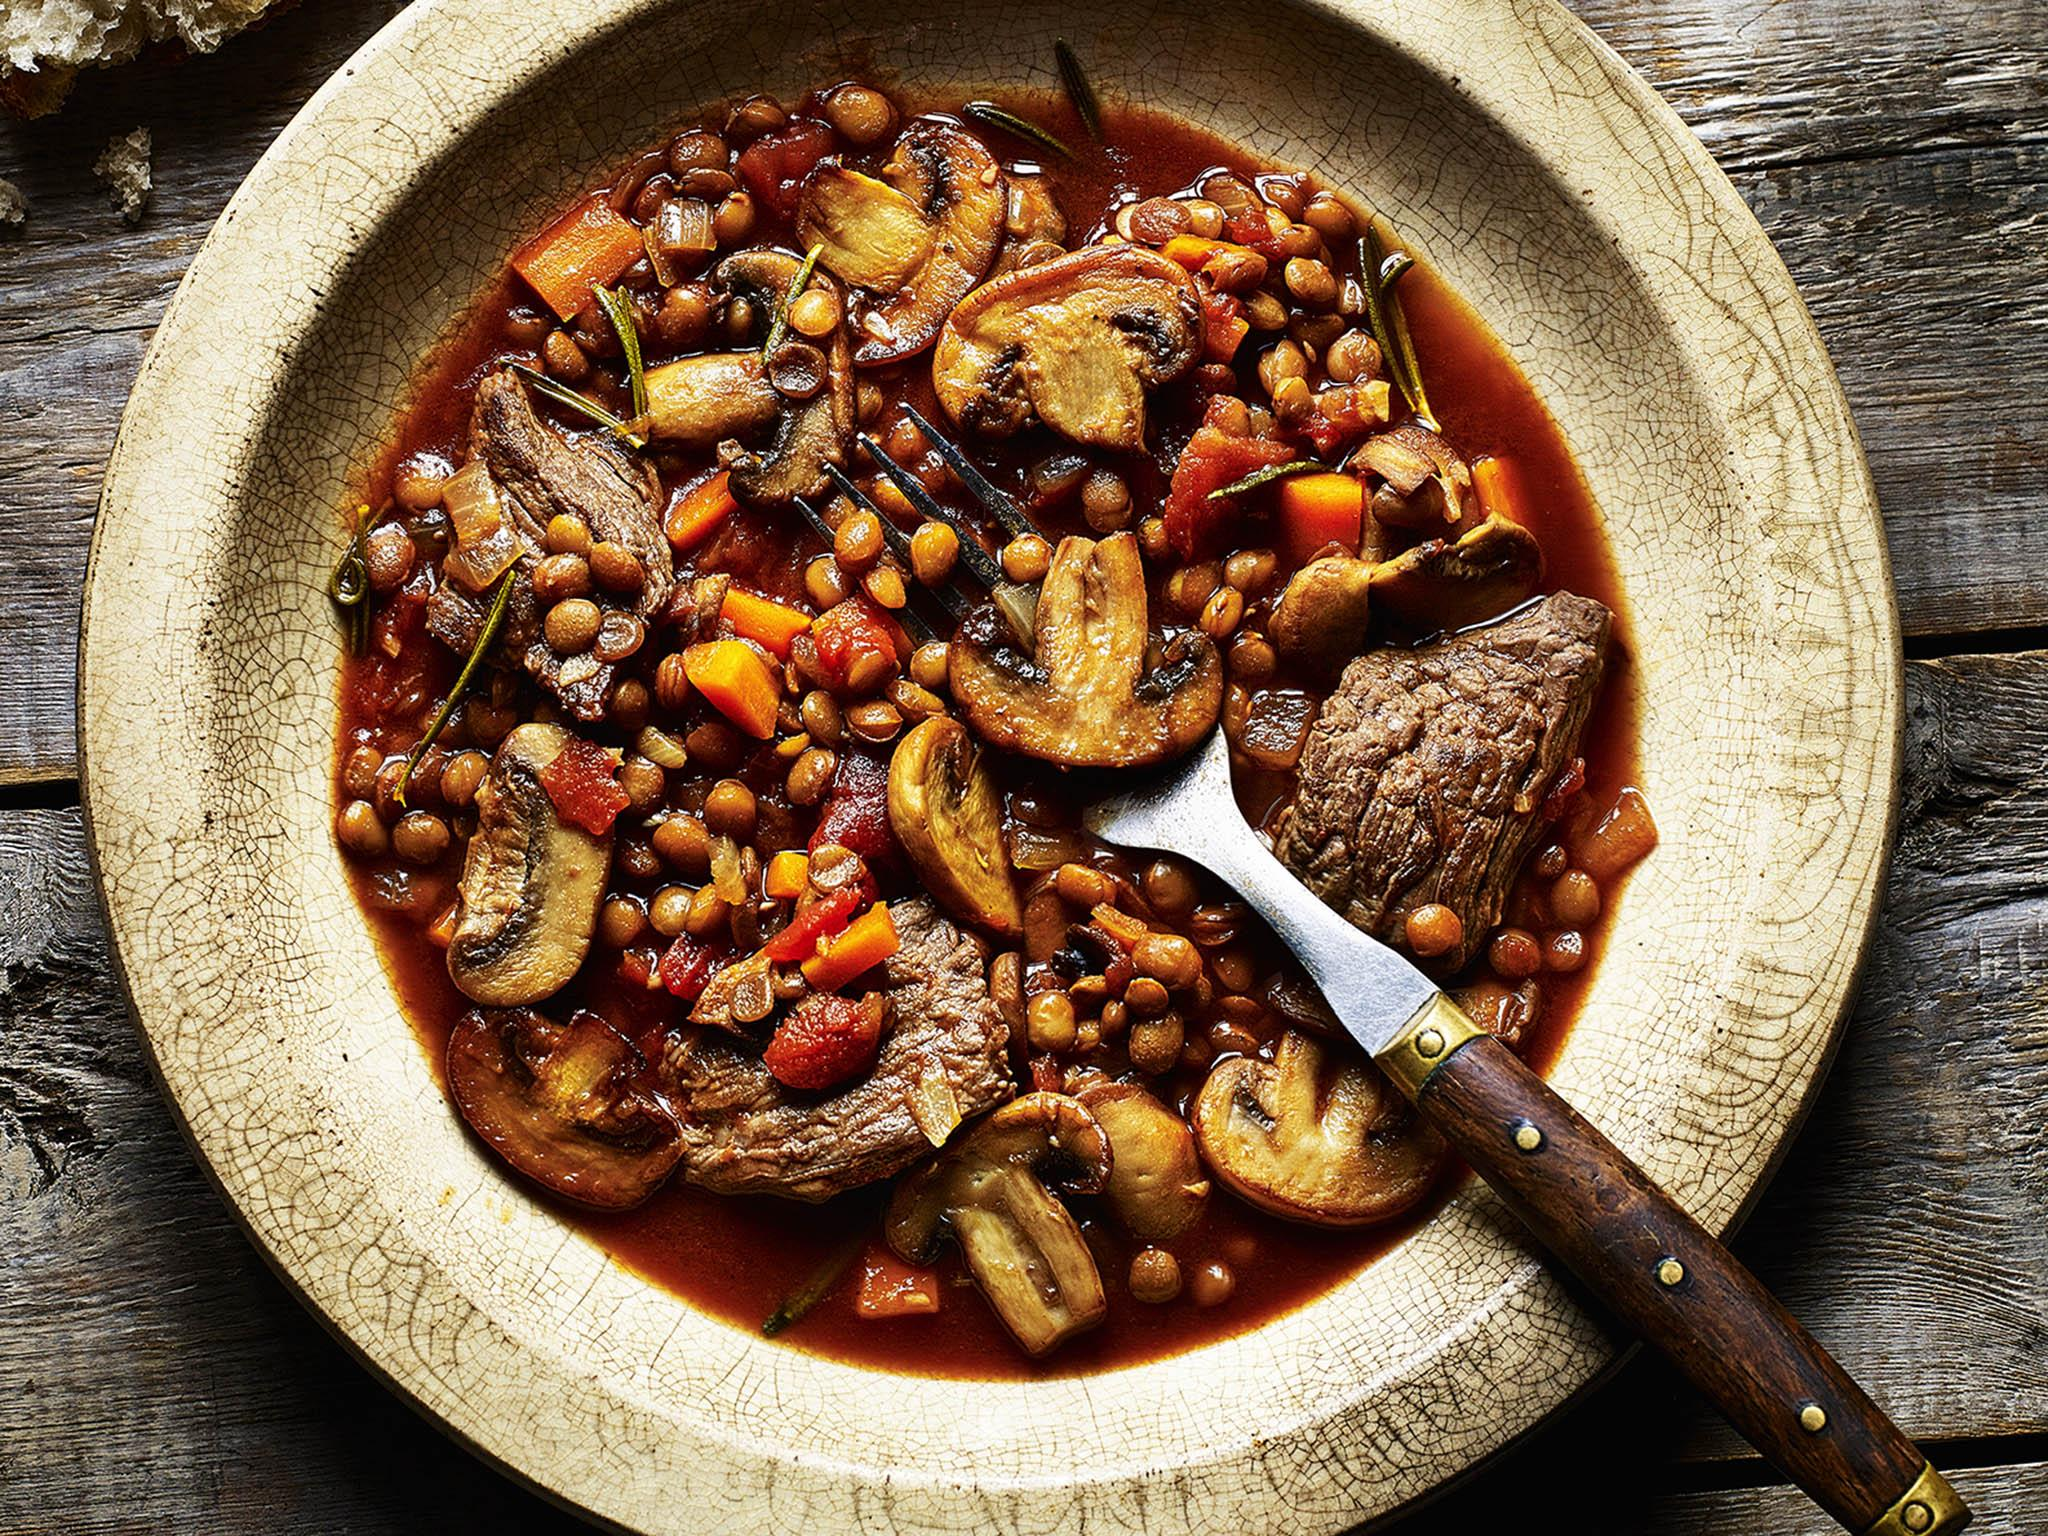 How to make lentil, beef and mushroom stew